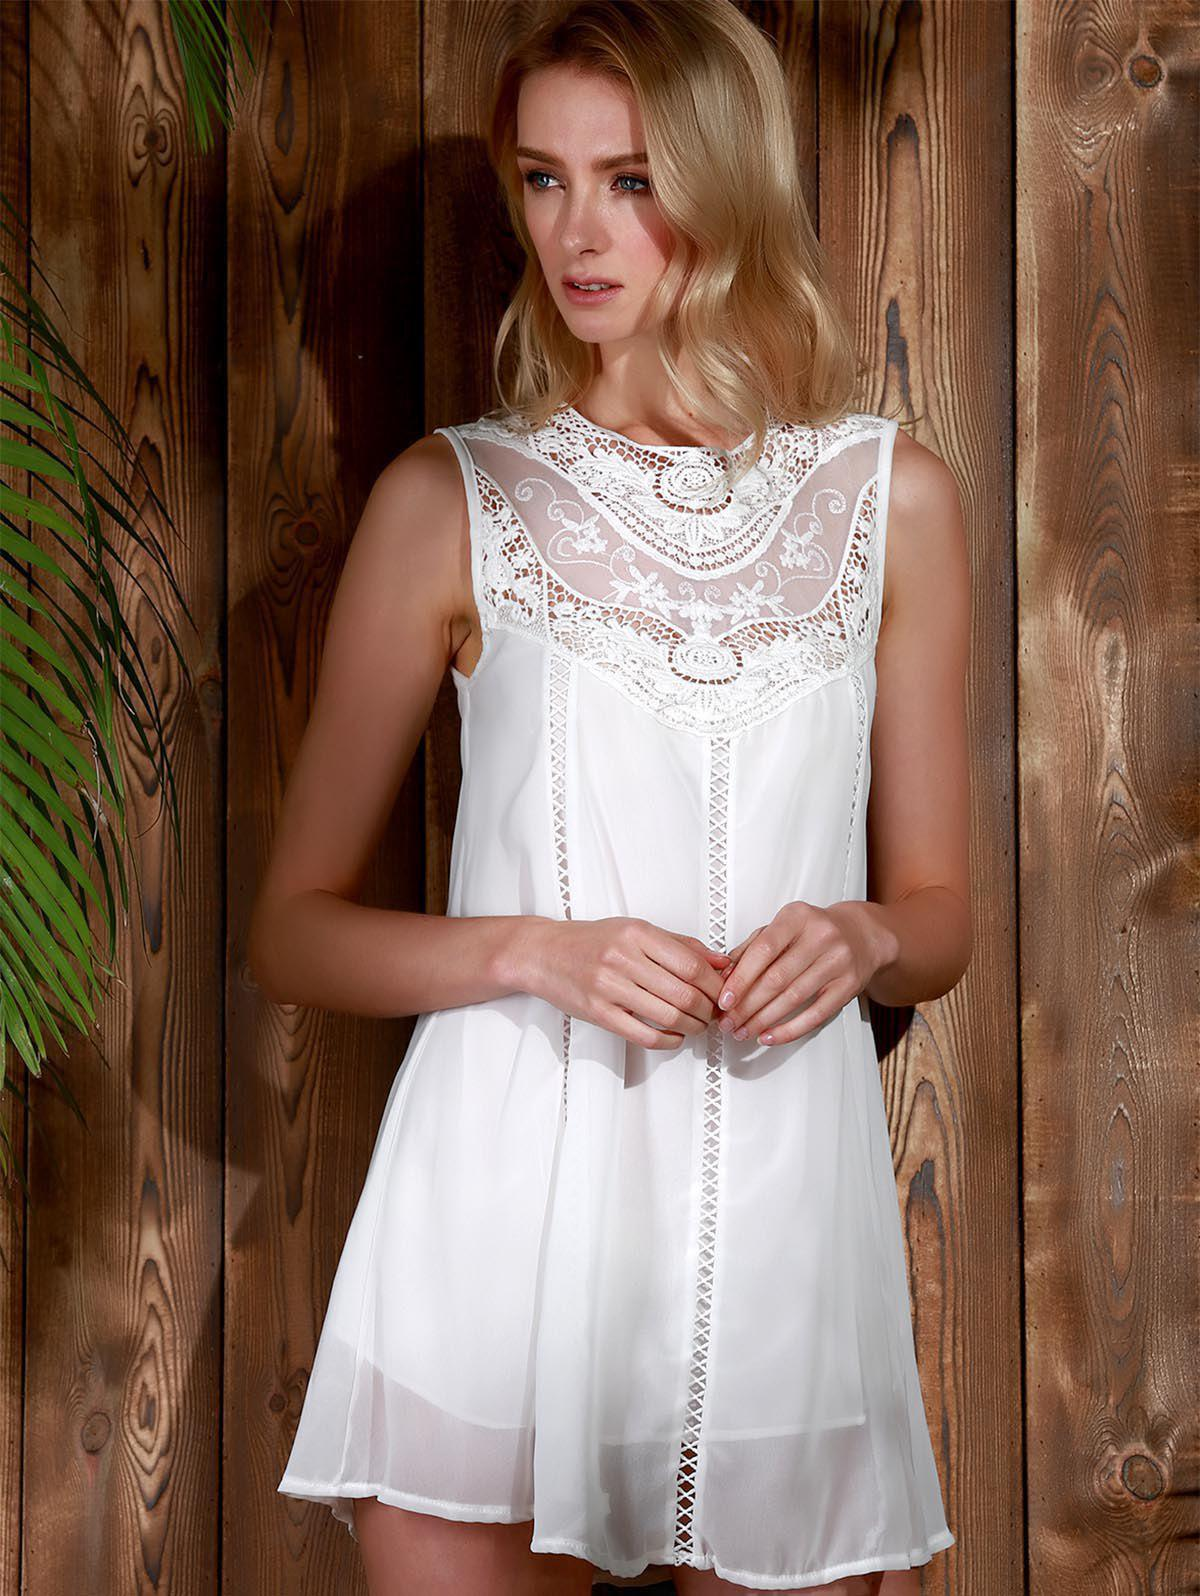 Trendy Style Round Collar Lace Splicing Chiffon Sleeveless Women's Dress - WHITE XL